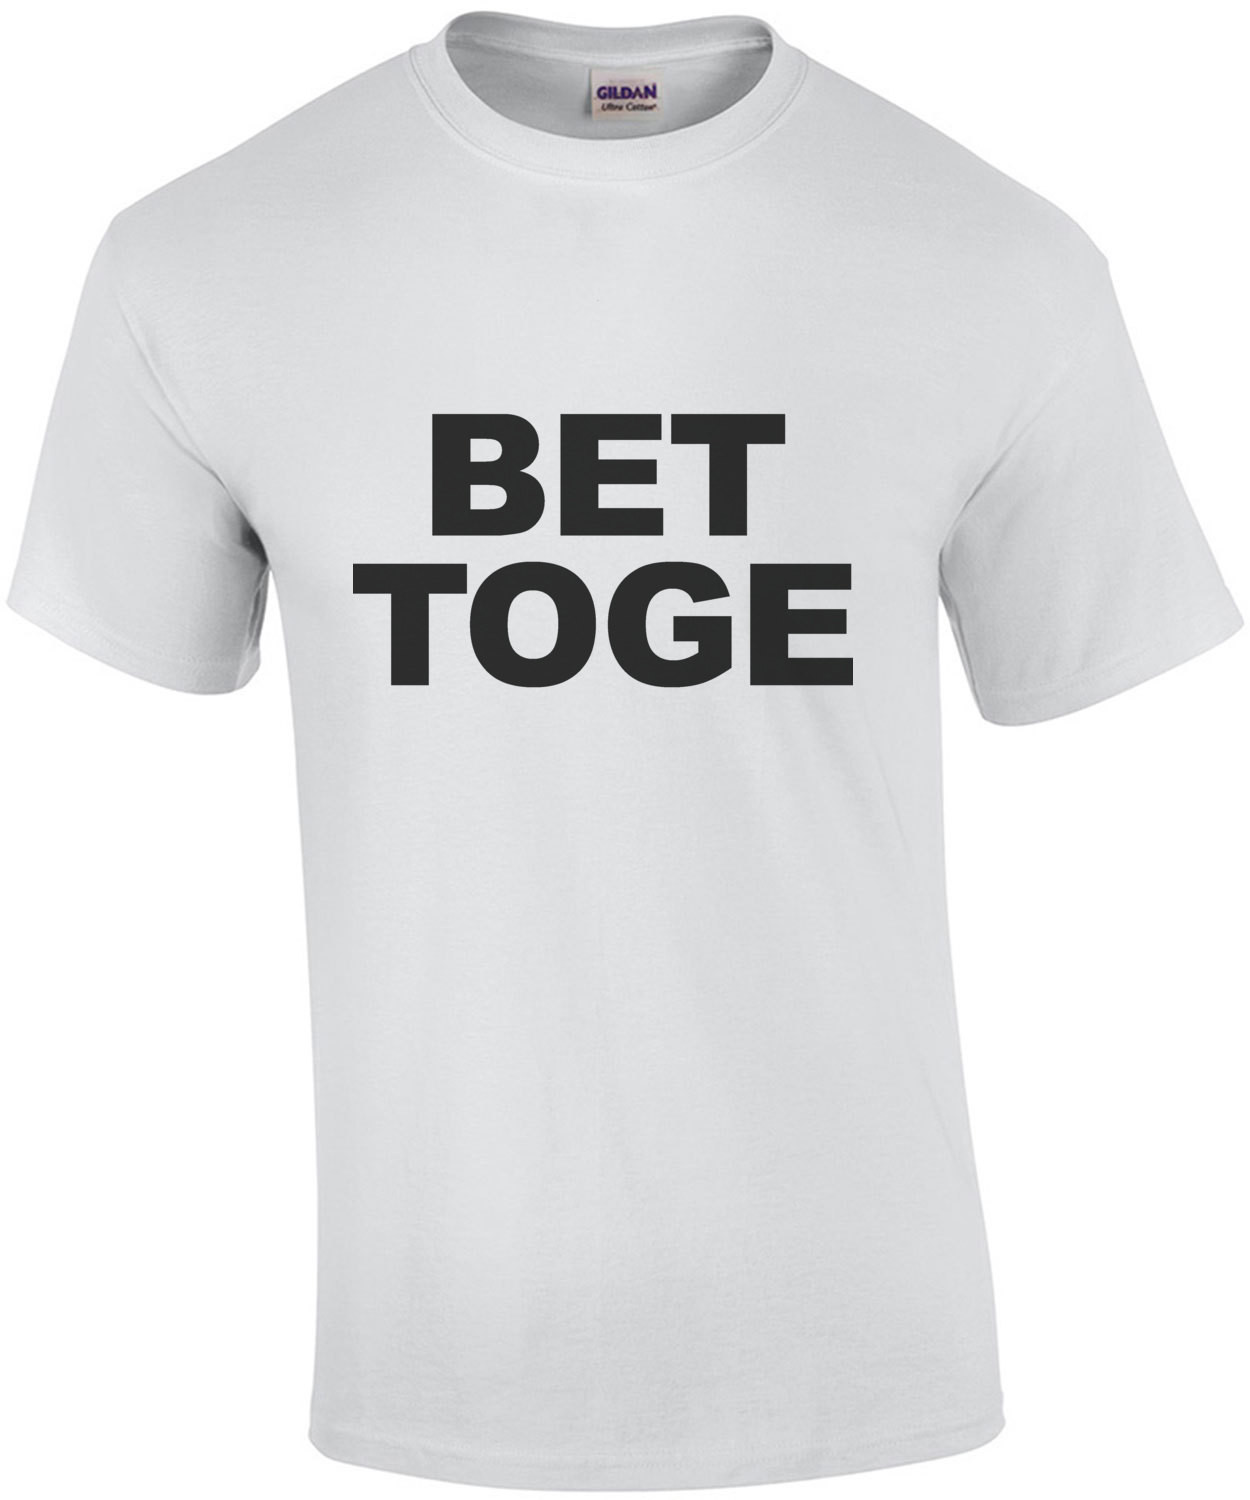 'BET TOGE' Better Together Part 1 - couples T-Shirt